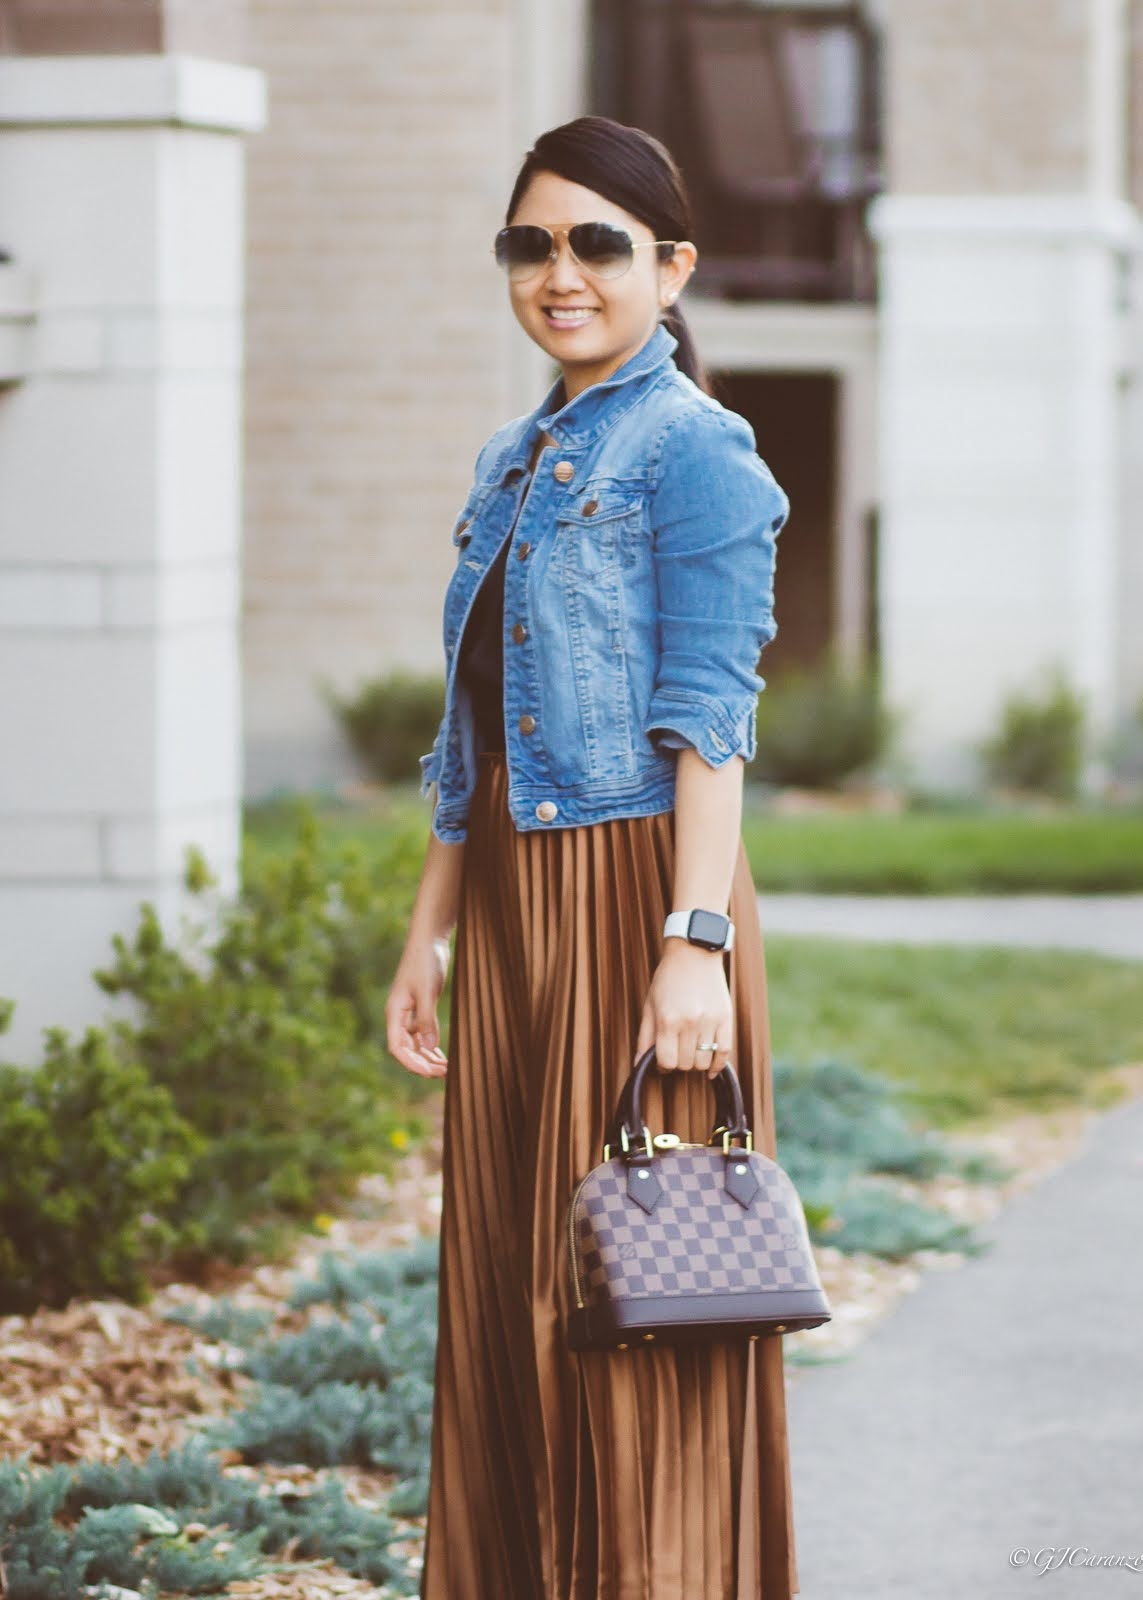 Zara Pleated Skirt | Denim Jacket | Ray-Ban Blue Aviator Sunglasses | Louis Vuitton Alma BB | Vince Camuto Ankle Boots | H&M Satin Camisole Top | Petite Outfit | Mom Style